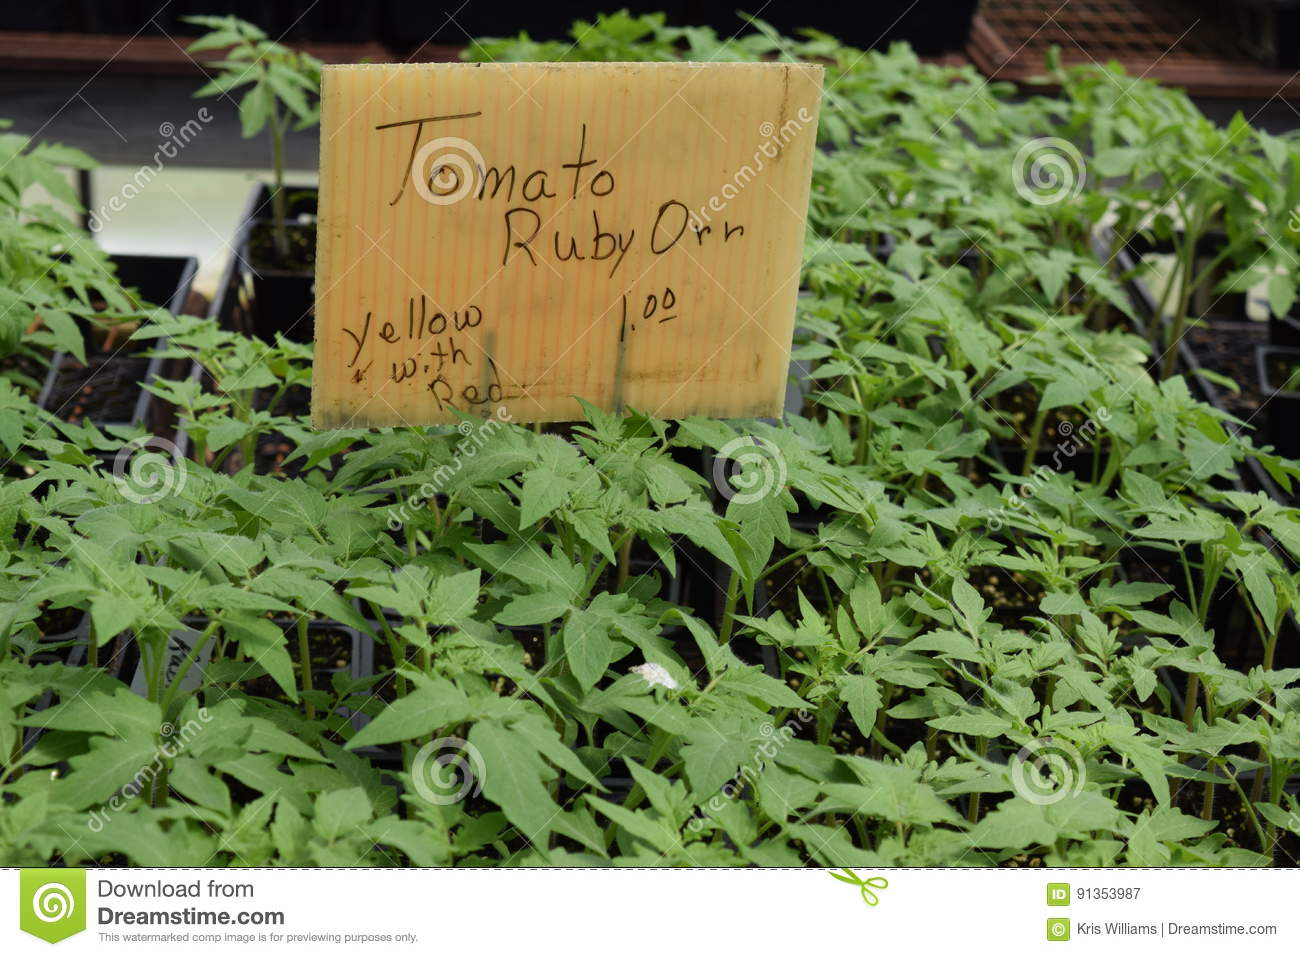 Yellow with red Ruby Orr tomato seedlings